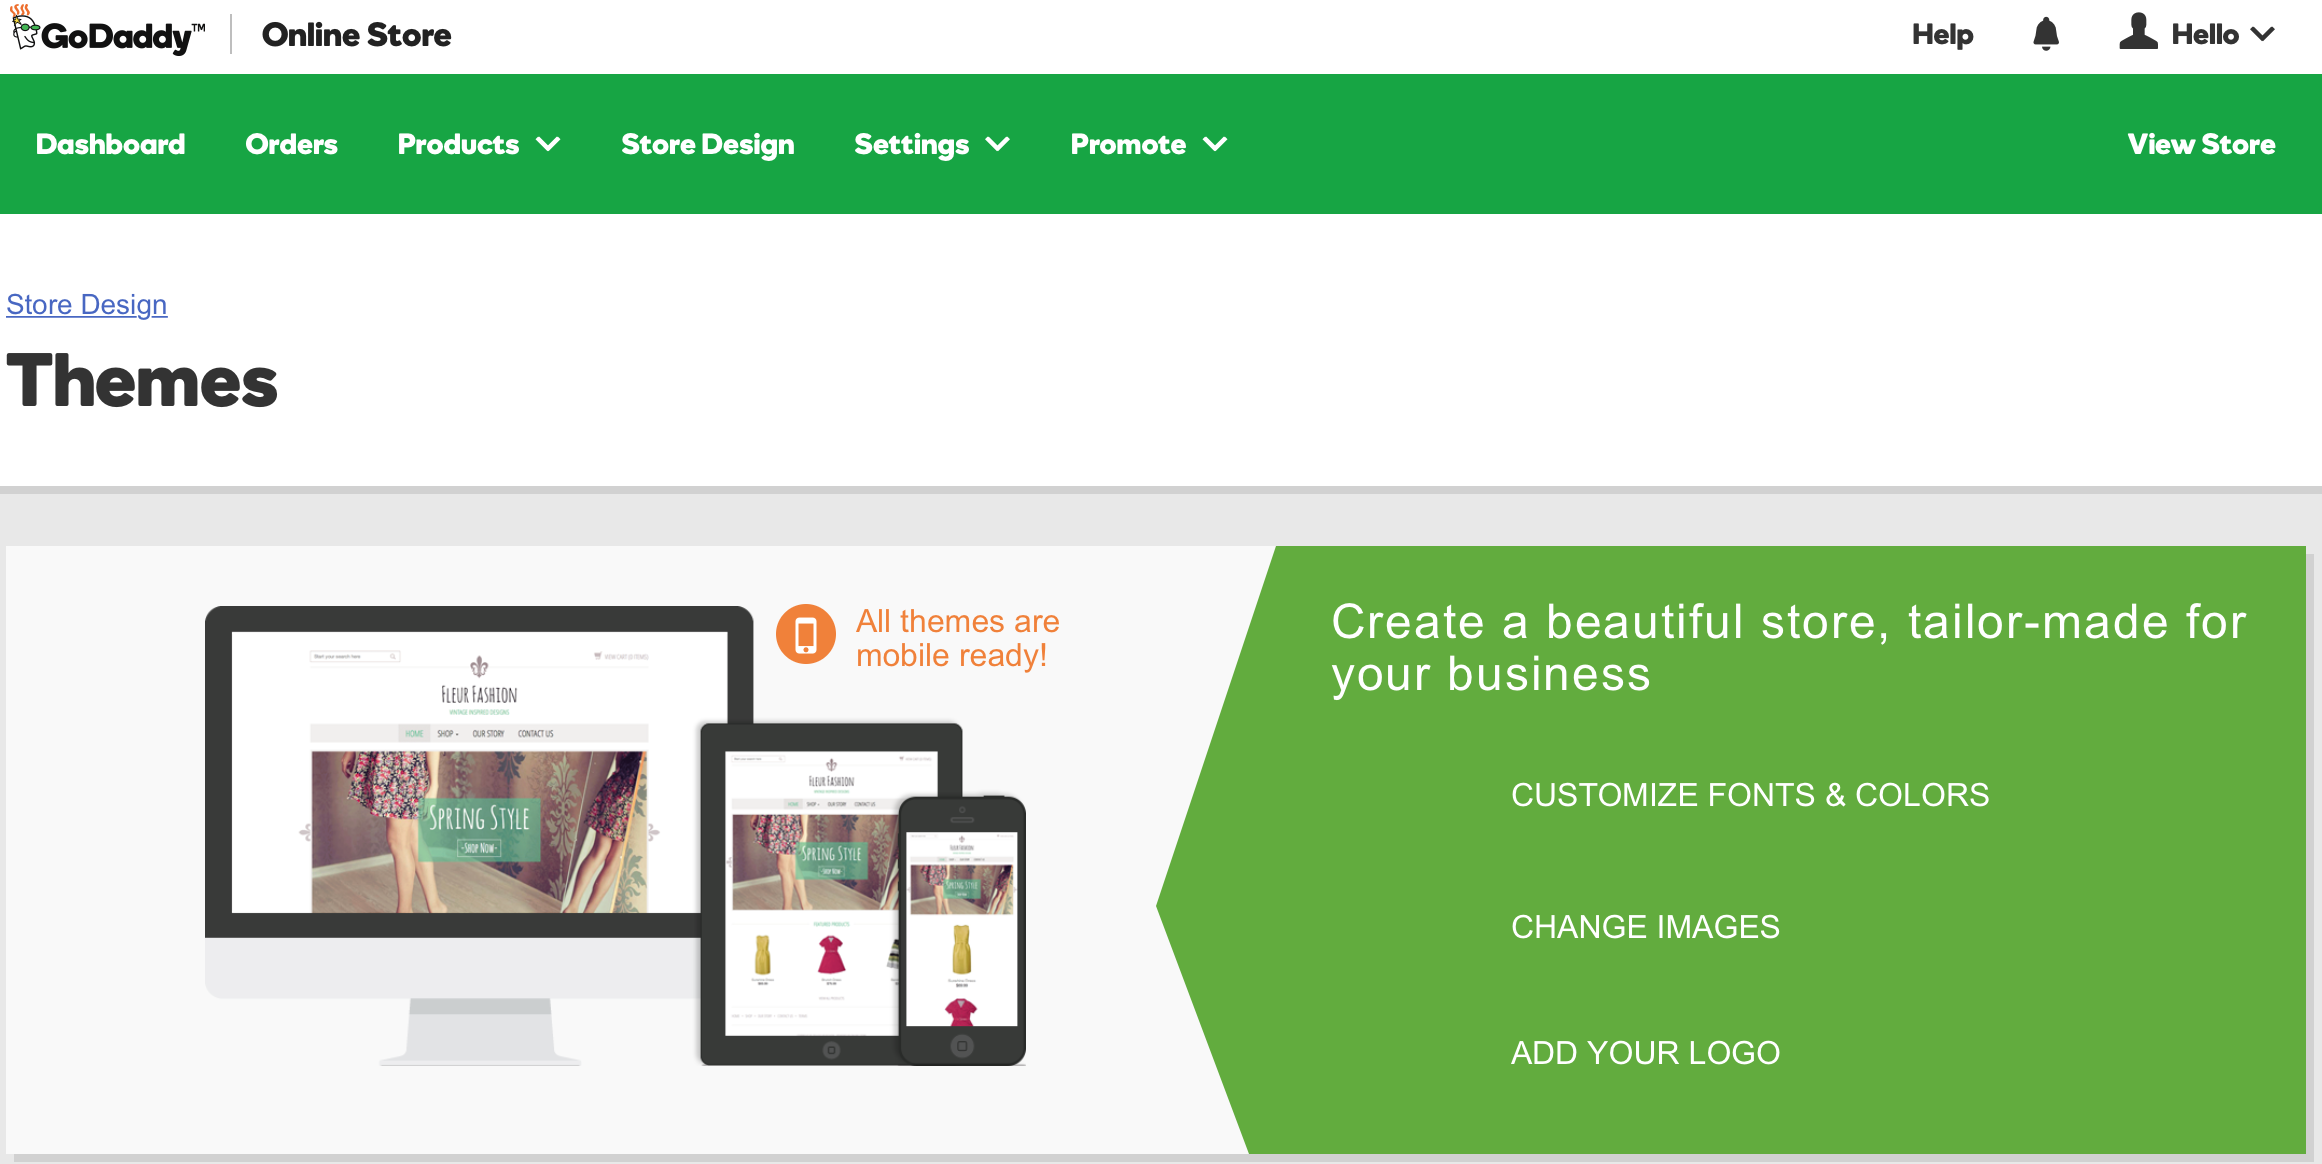 GoDaddy Online Store - 18 Themes Available